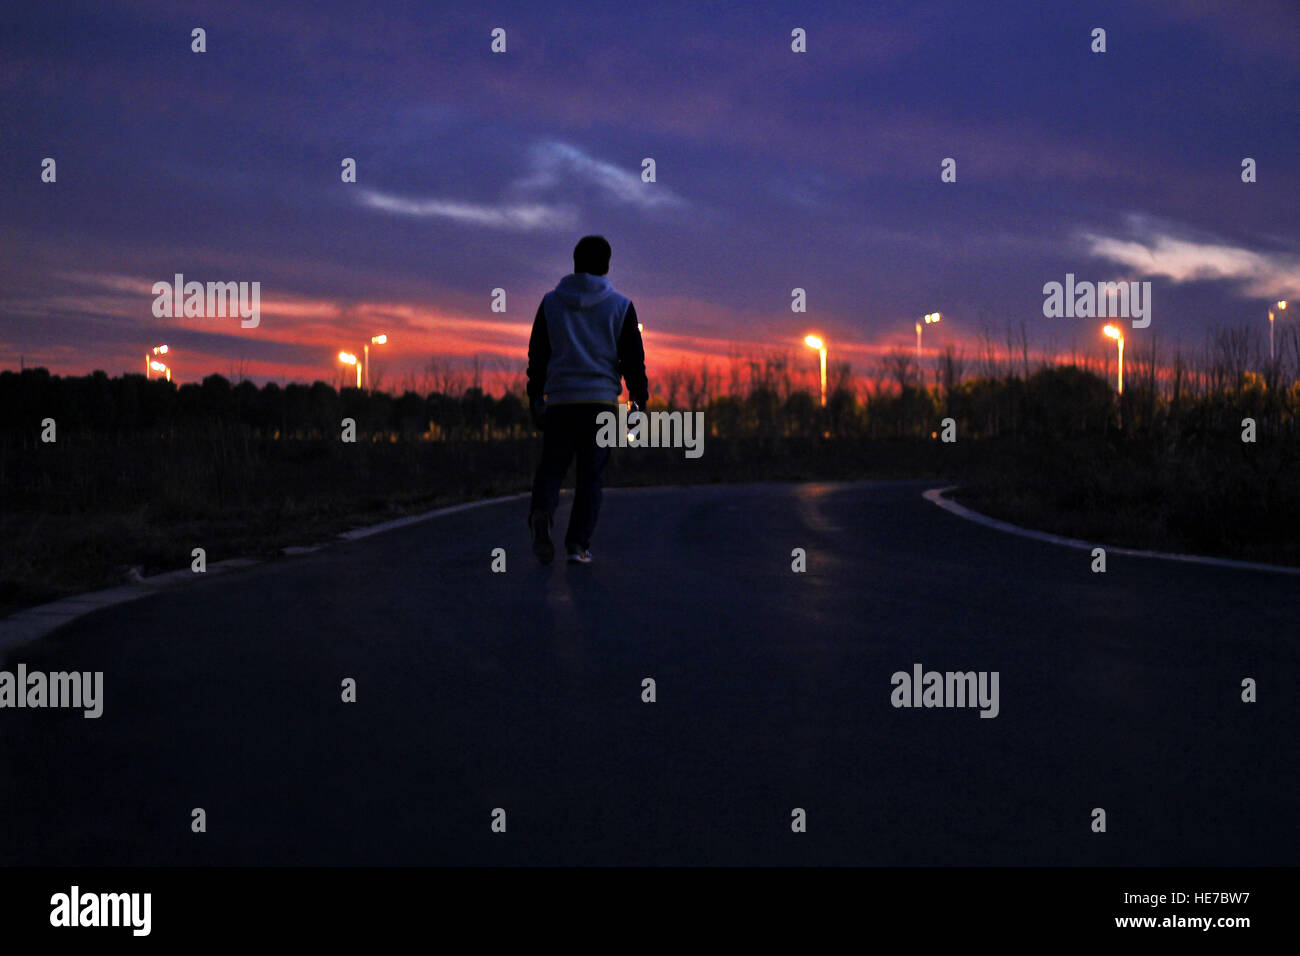 alone in sunset - Stock Image